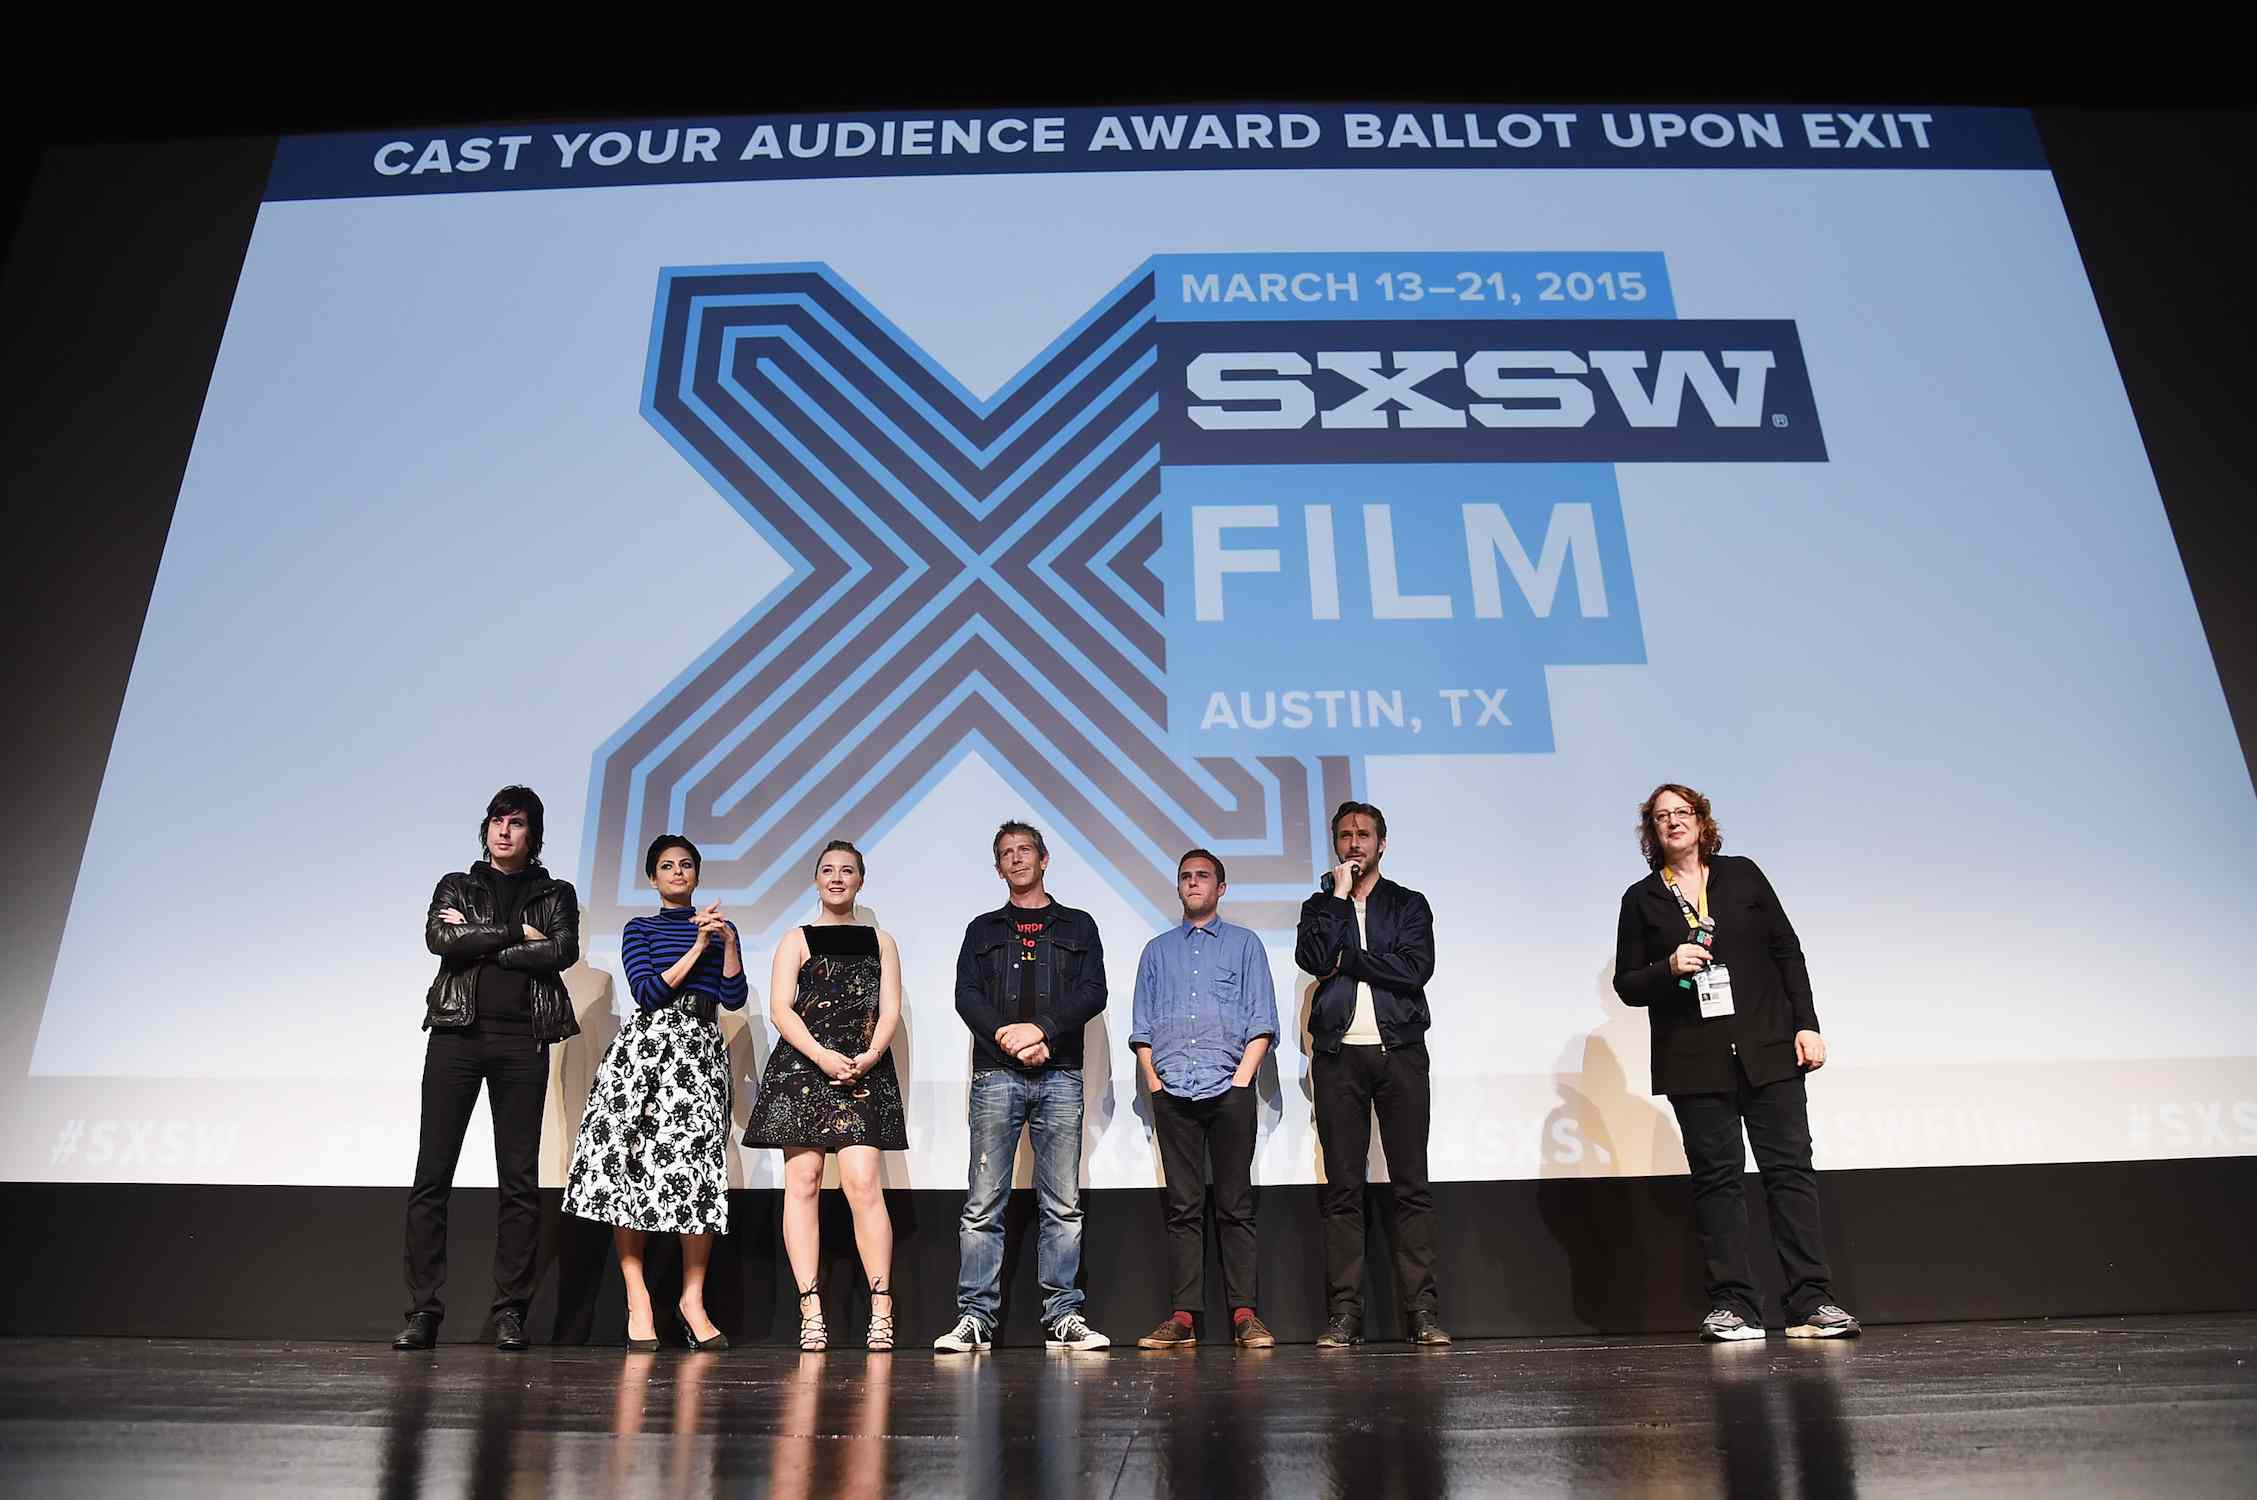 The cast of 'Lost River' stands onstage at the SXSW film festival in Austin, Texas.